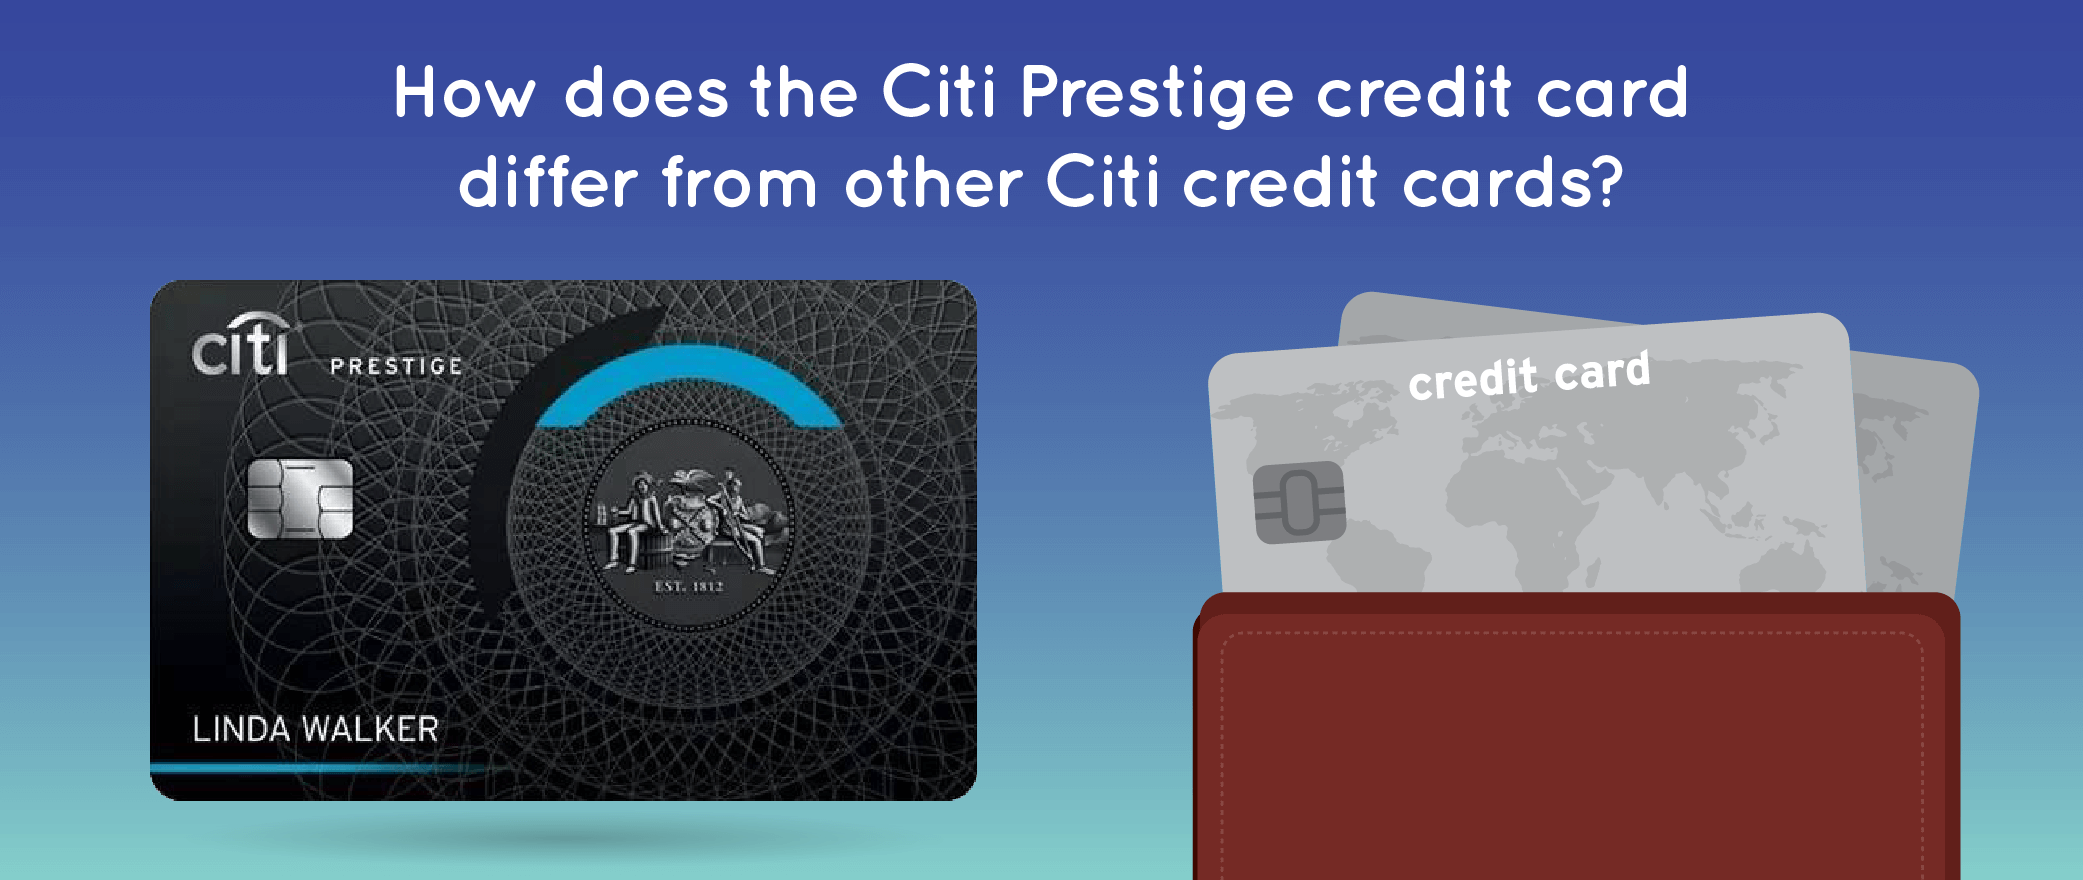 How does the Citi Prestige credit card differ from other Citi credit cards?